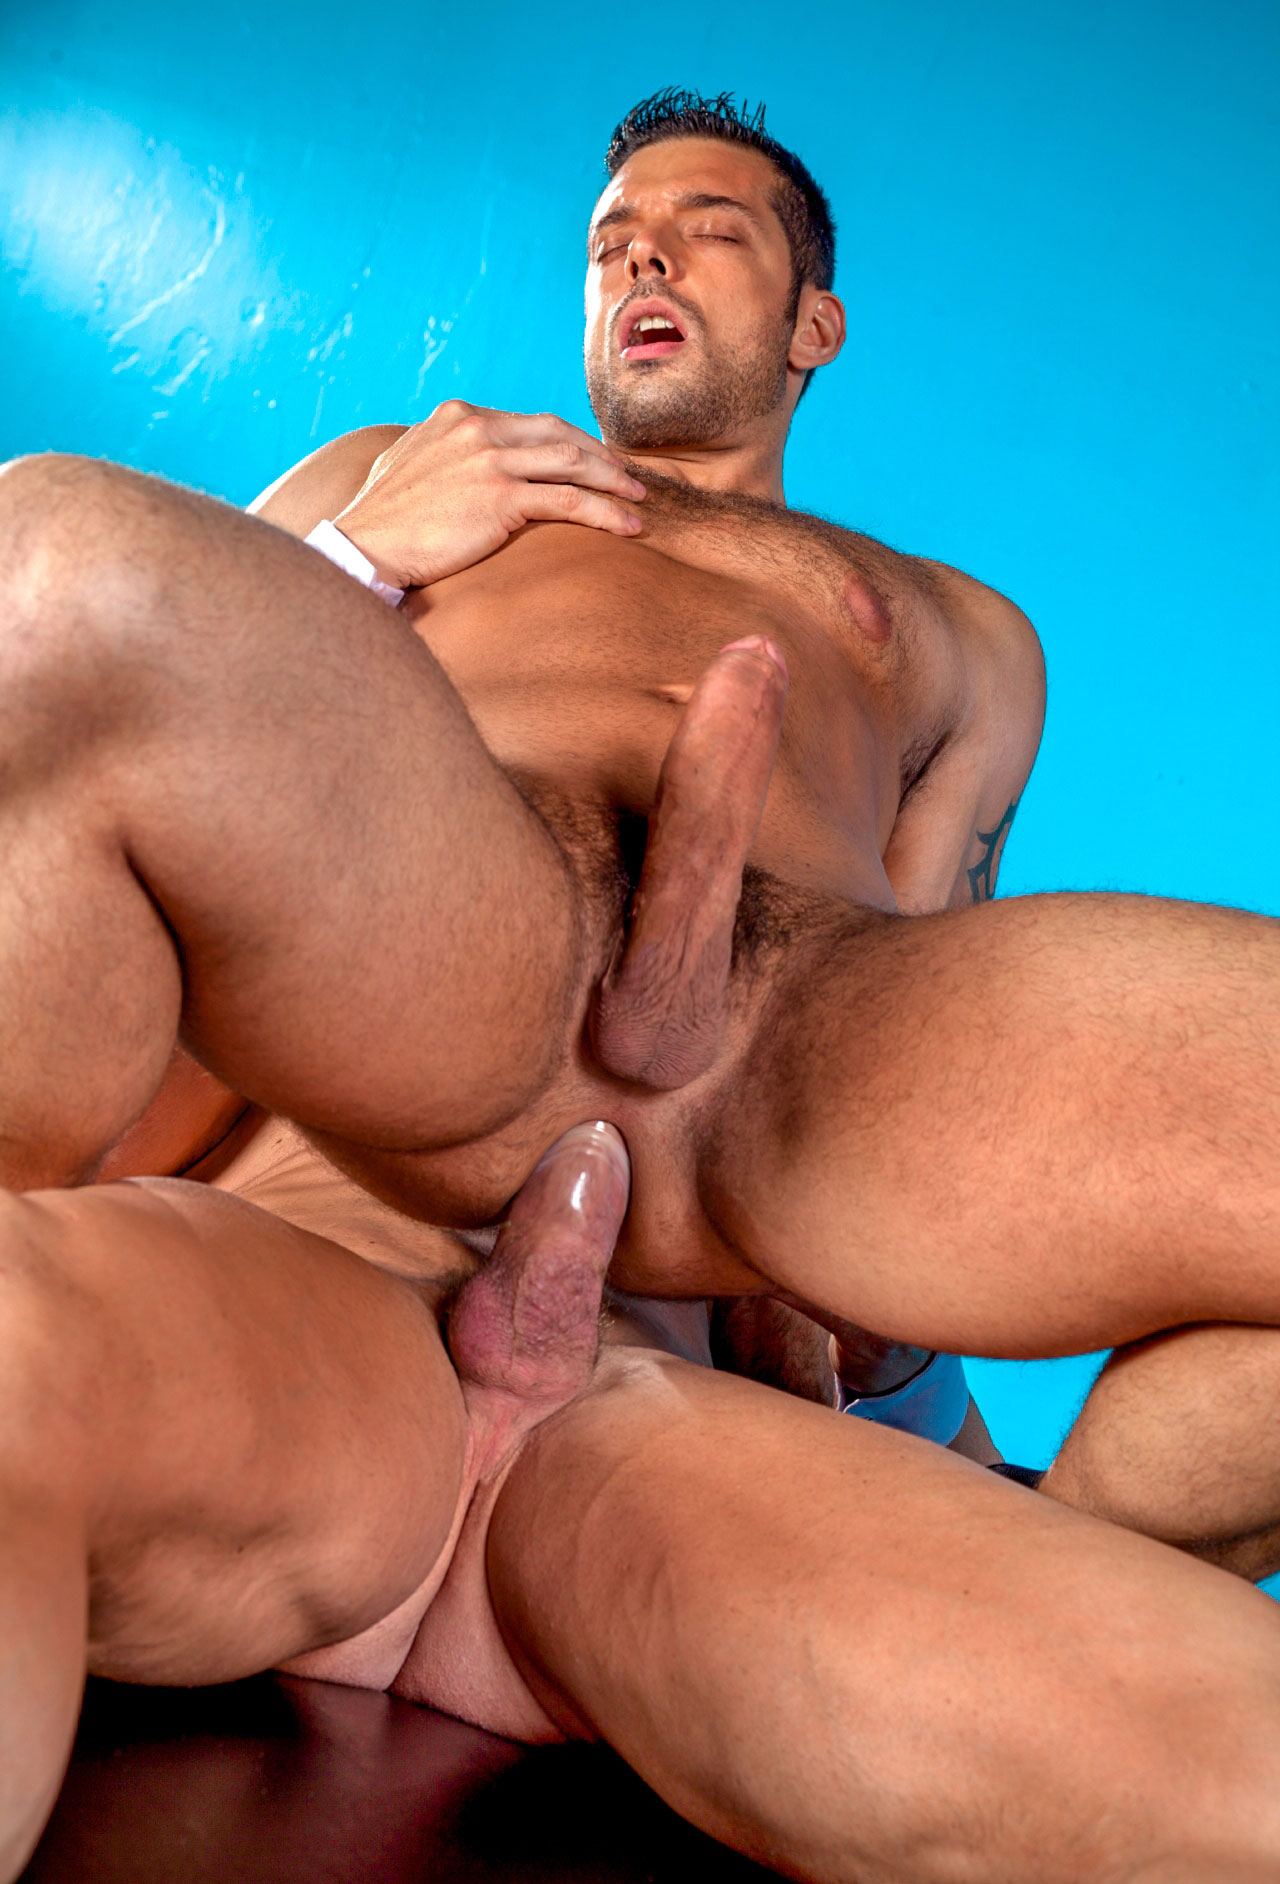 Hd Videos Porno Gay En Acceso Red